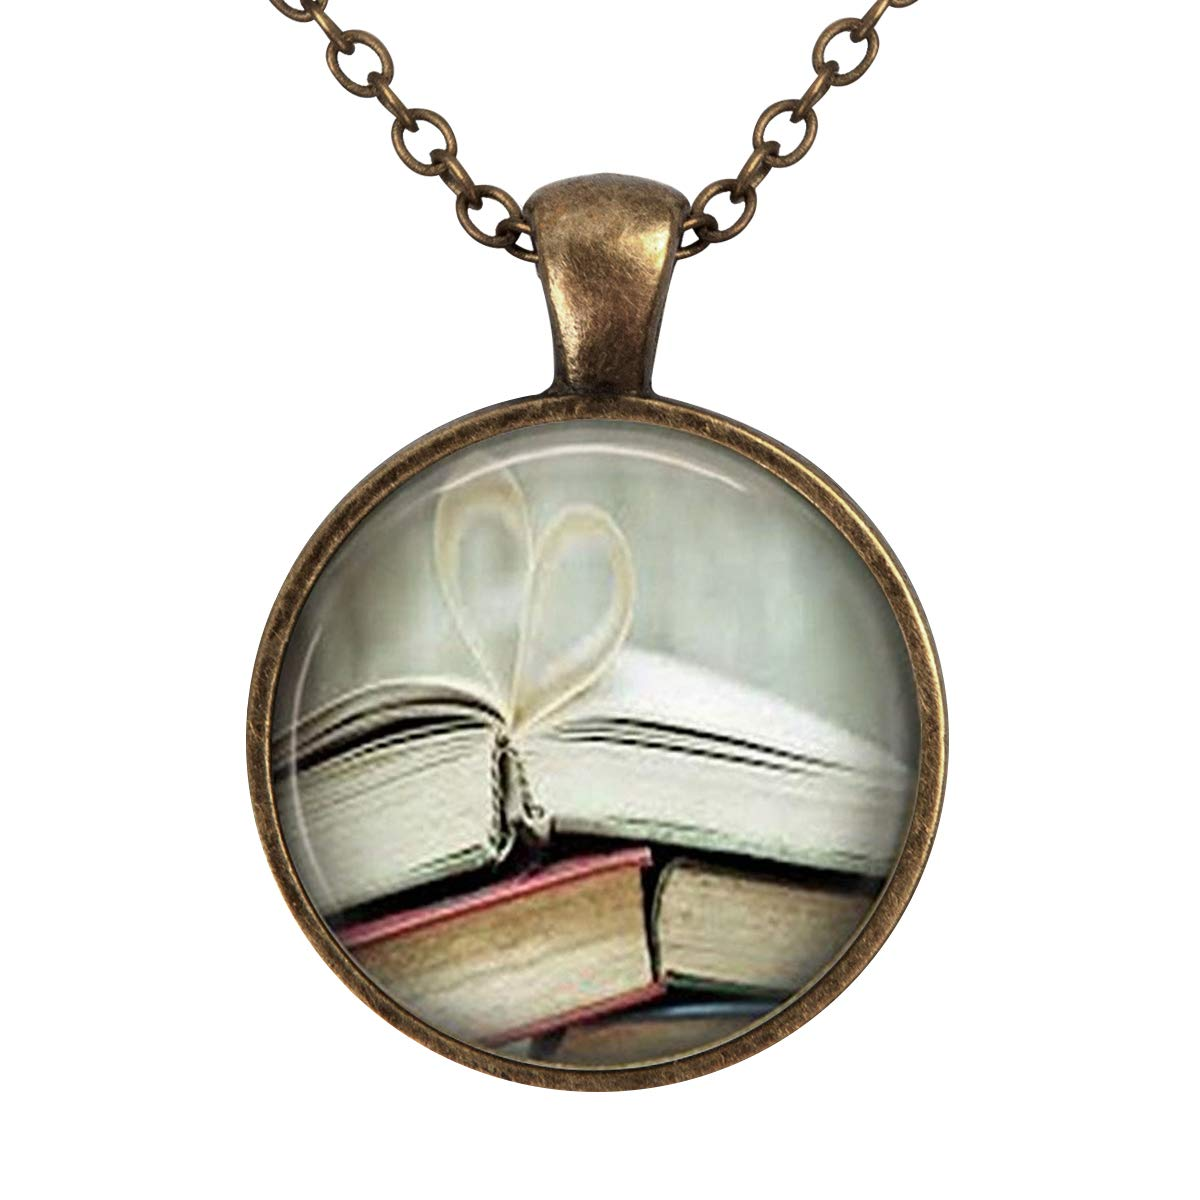 Book Page Librarian Bibliophile Book Lover Art Vintage Pendant Necklace Vintage Bronze Chain Statement Necklace Handmade Jewelry Gifts